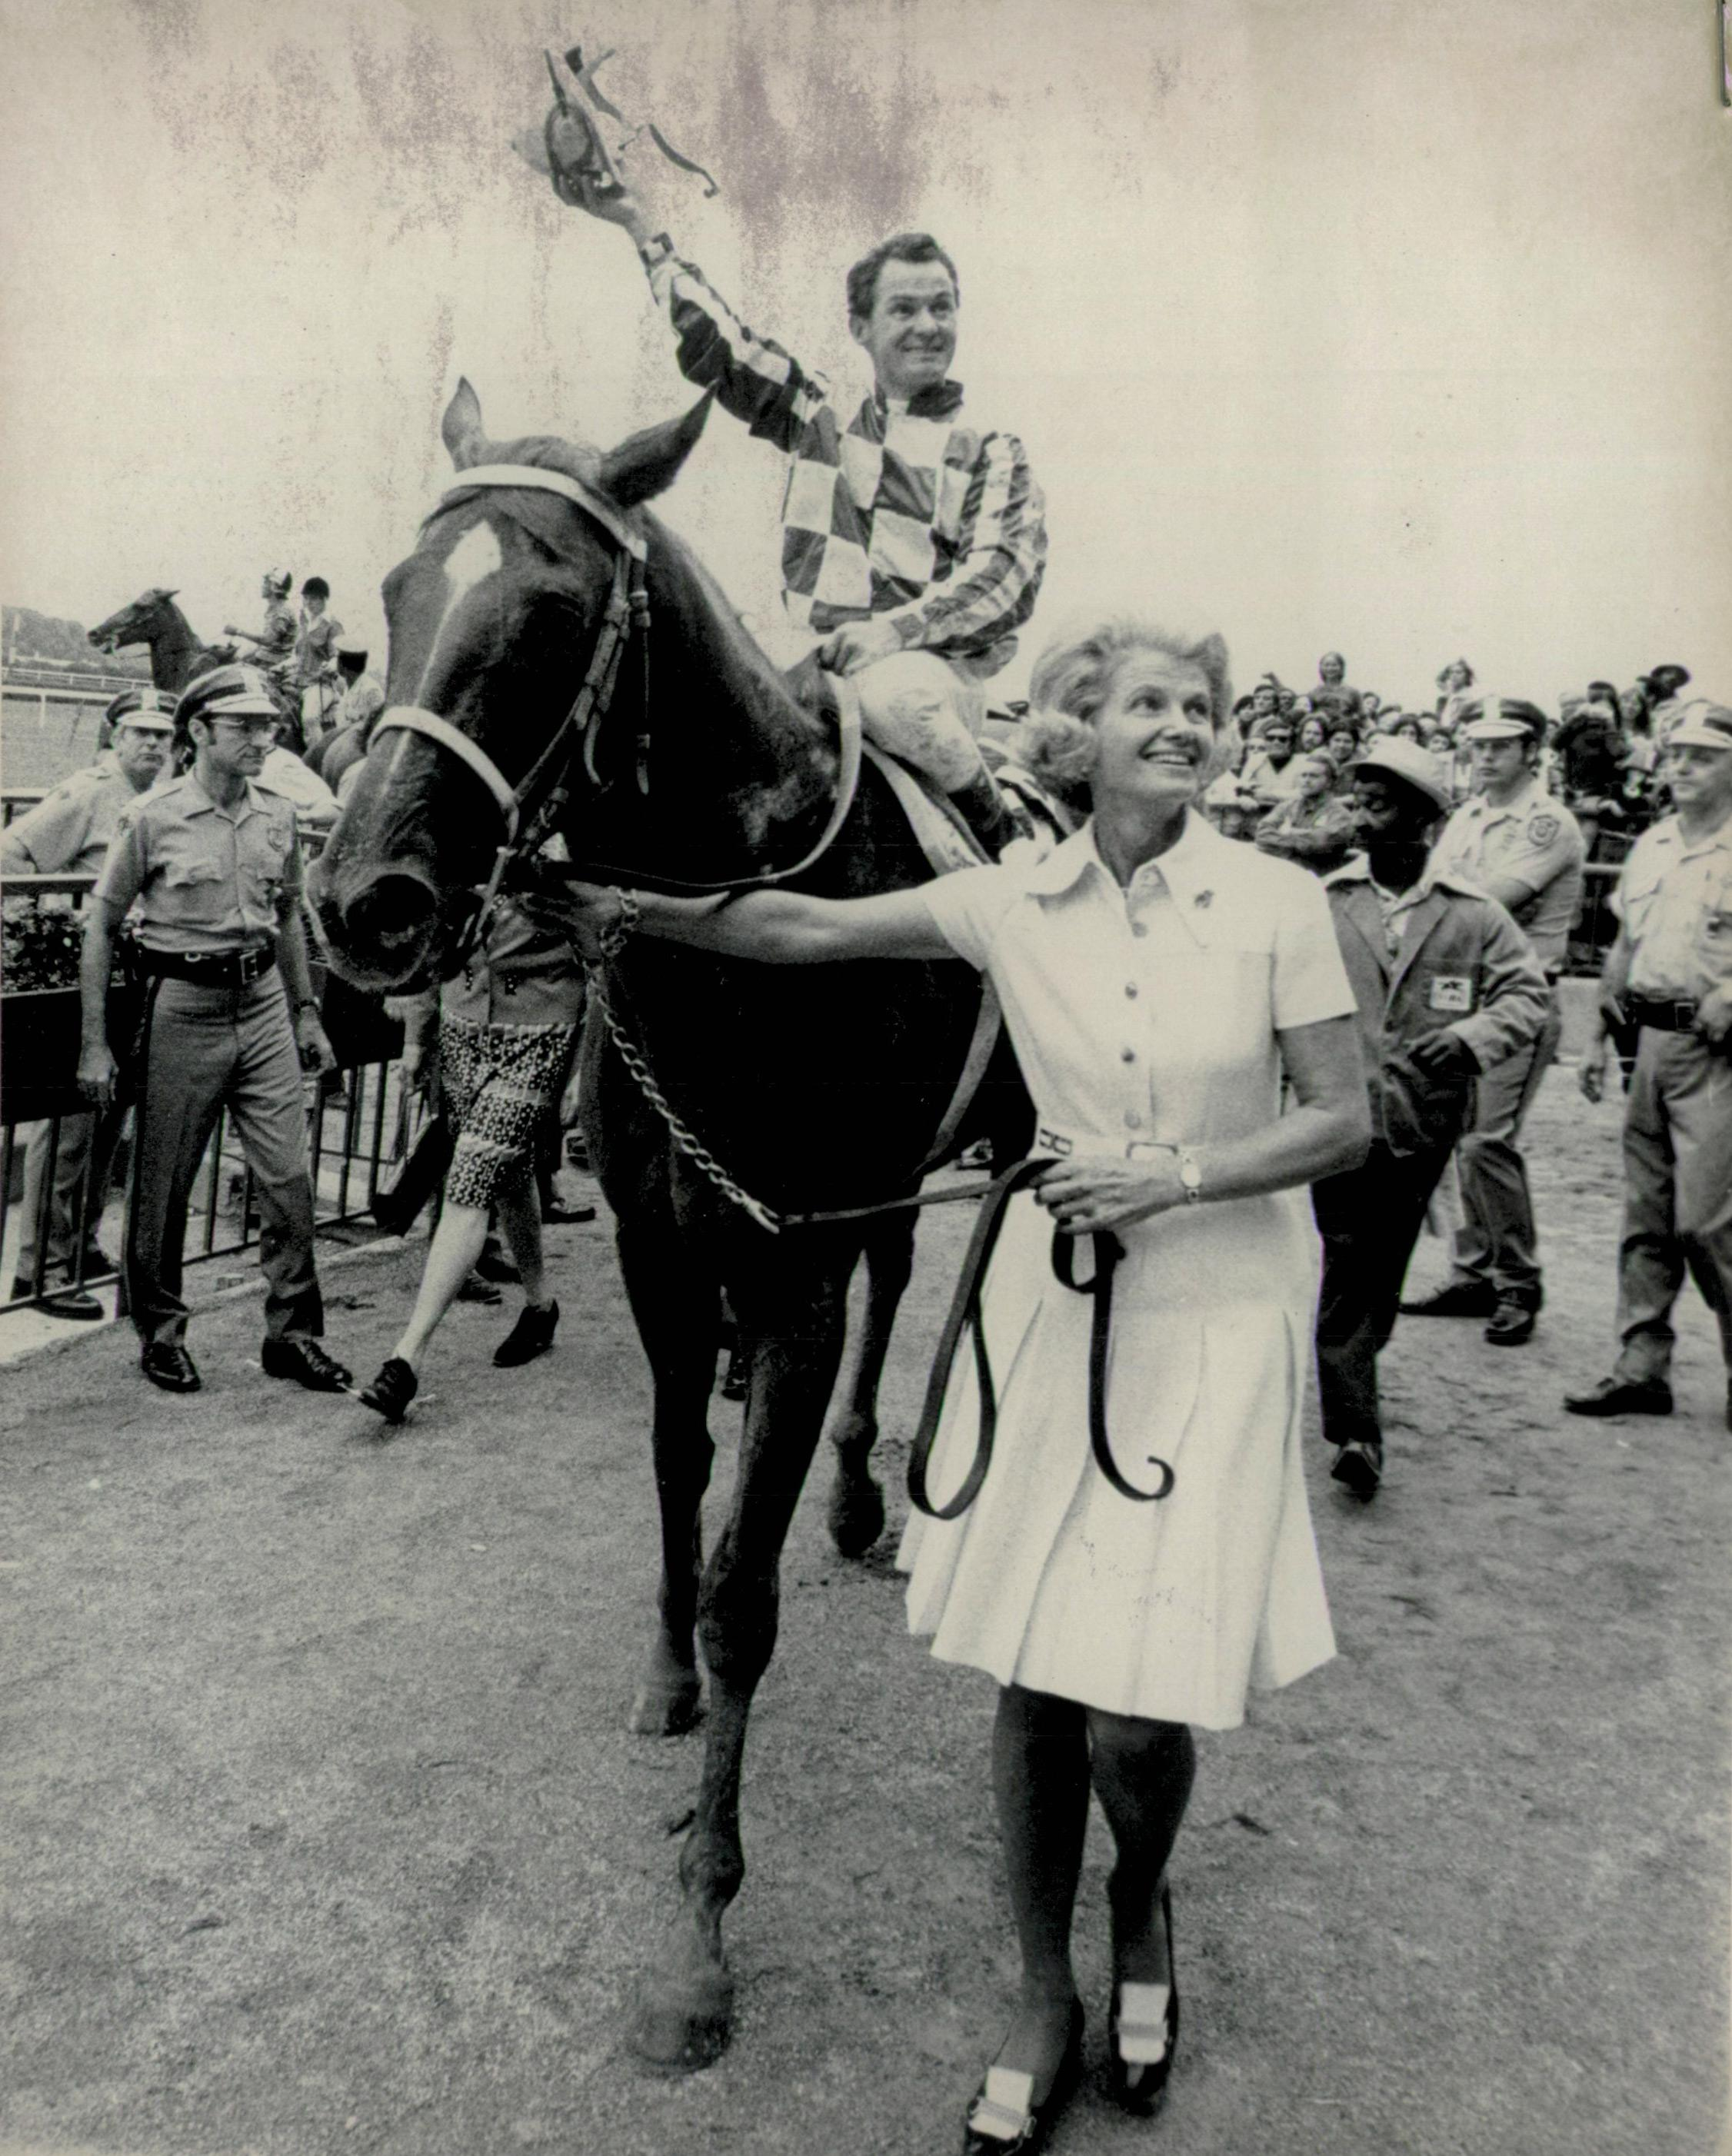 Turcotte, Penny Chenery, and Secretariat after winning the Marlboro Cup.